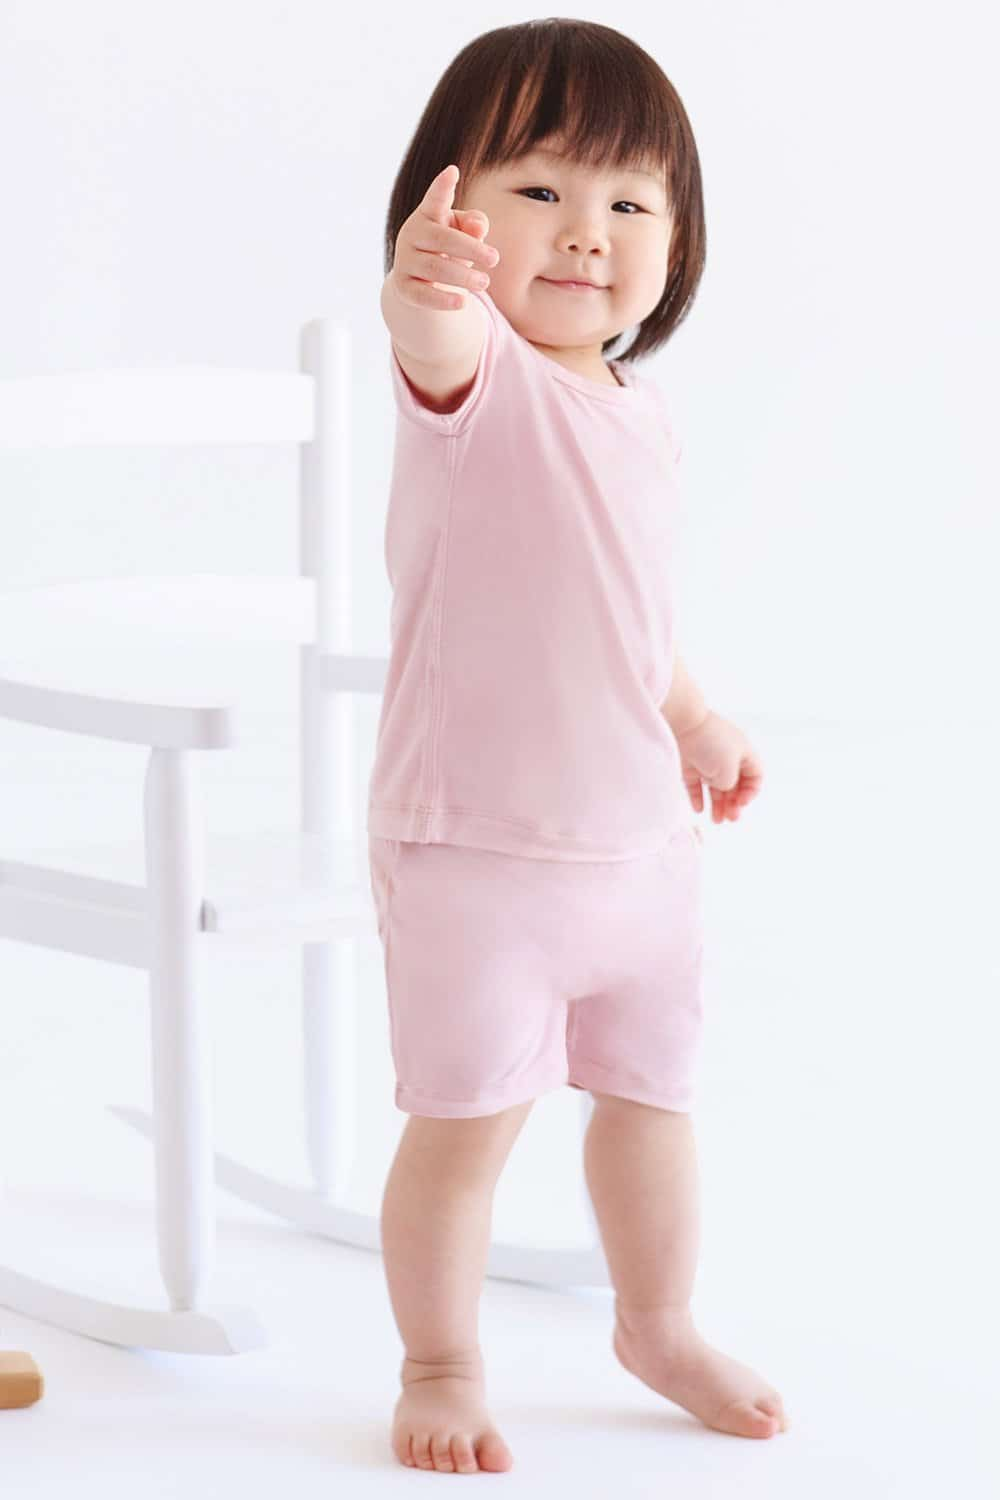 Tremendous The Cutest Ethical And Organic Apparel Brands For Babies And Theyellowbook Wood Chair Design Ideas Theyellowbookinfo